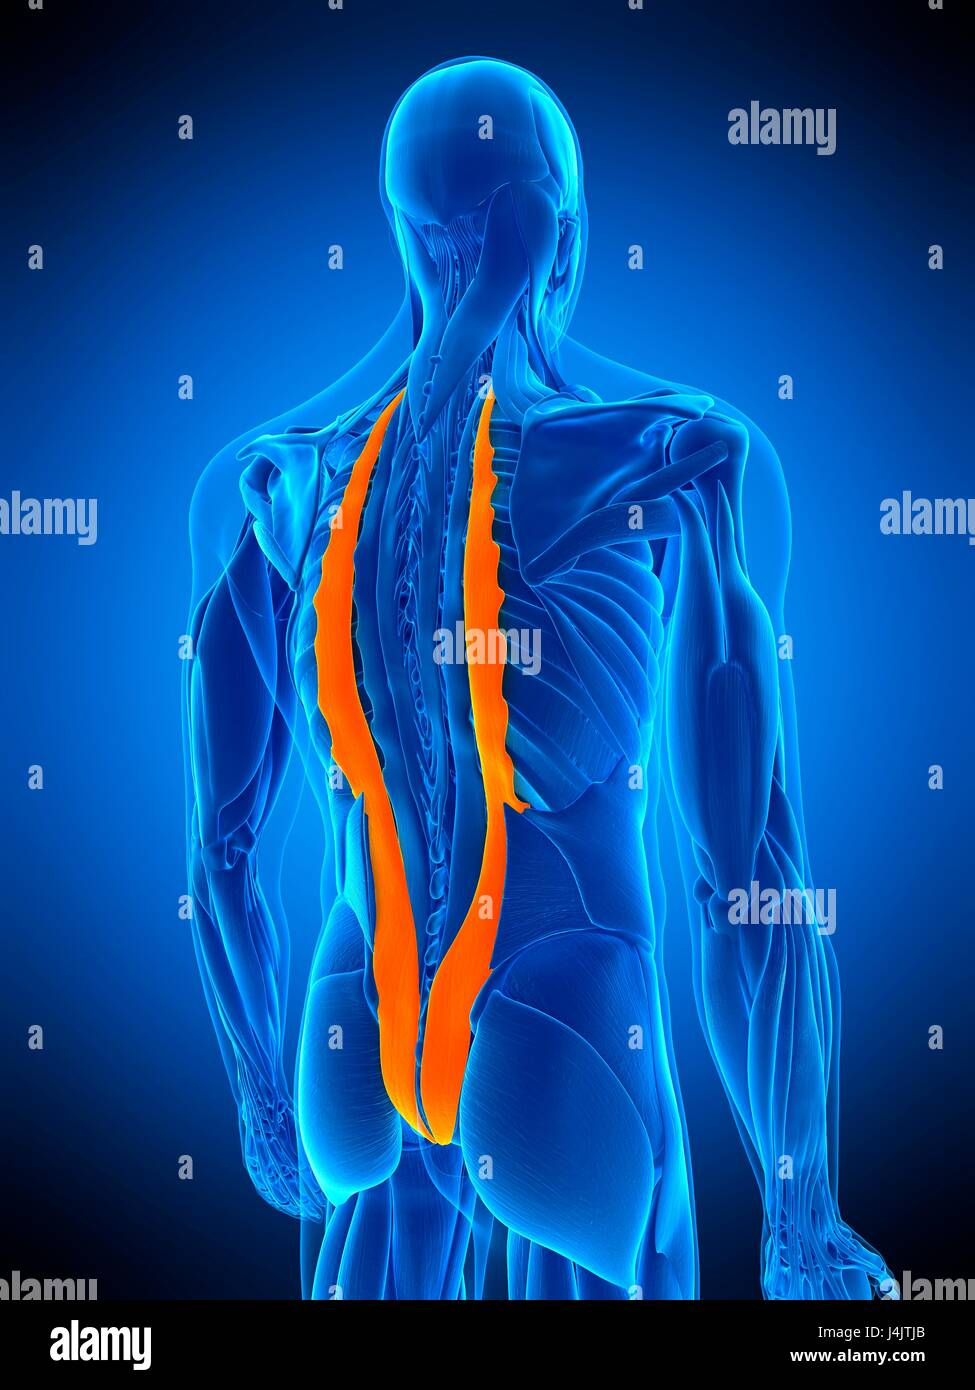 illustration of the iliocostalis muscle stock photo 140556035 alamy